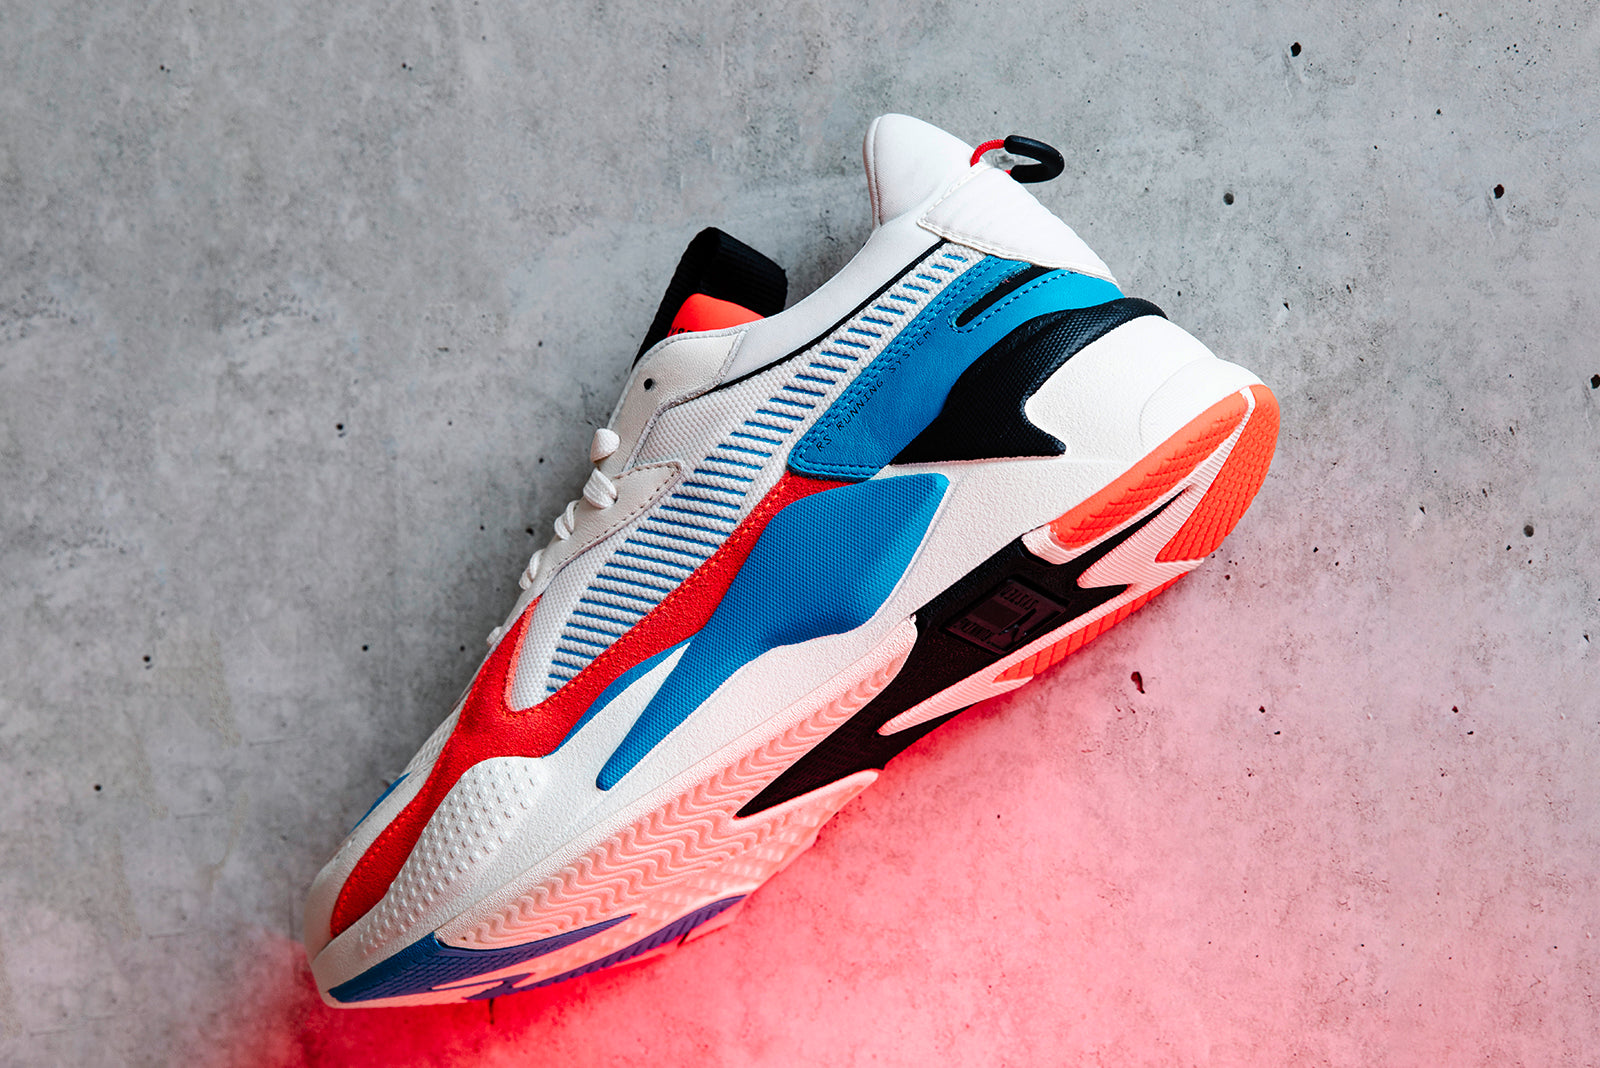 4b6a0c5c562e9c PUMA RS-X Reinvention 369579-01. Whisper White Red Price  £89.00. Launch   Wednesday 31st of October ONLINE  23 00GMT